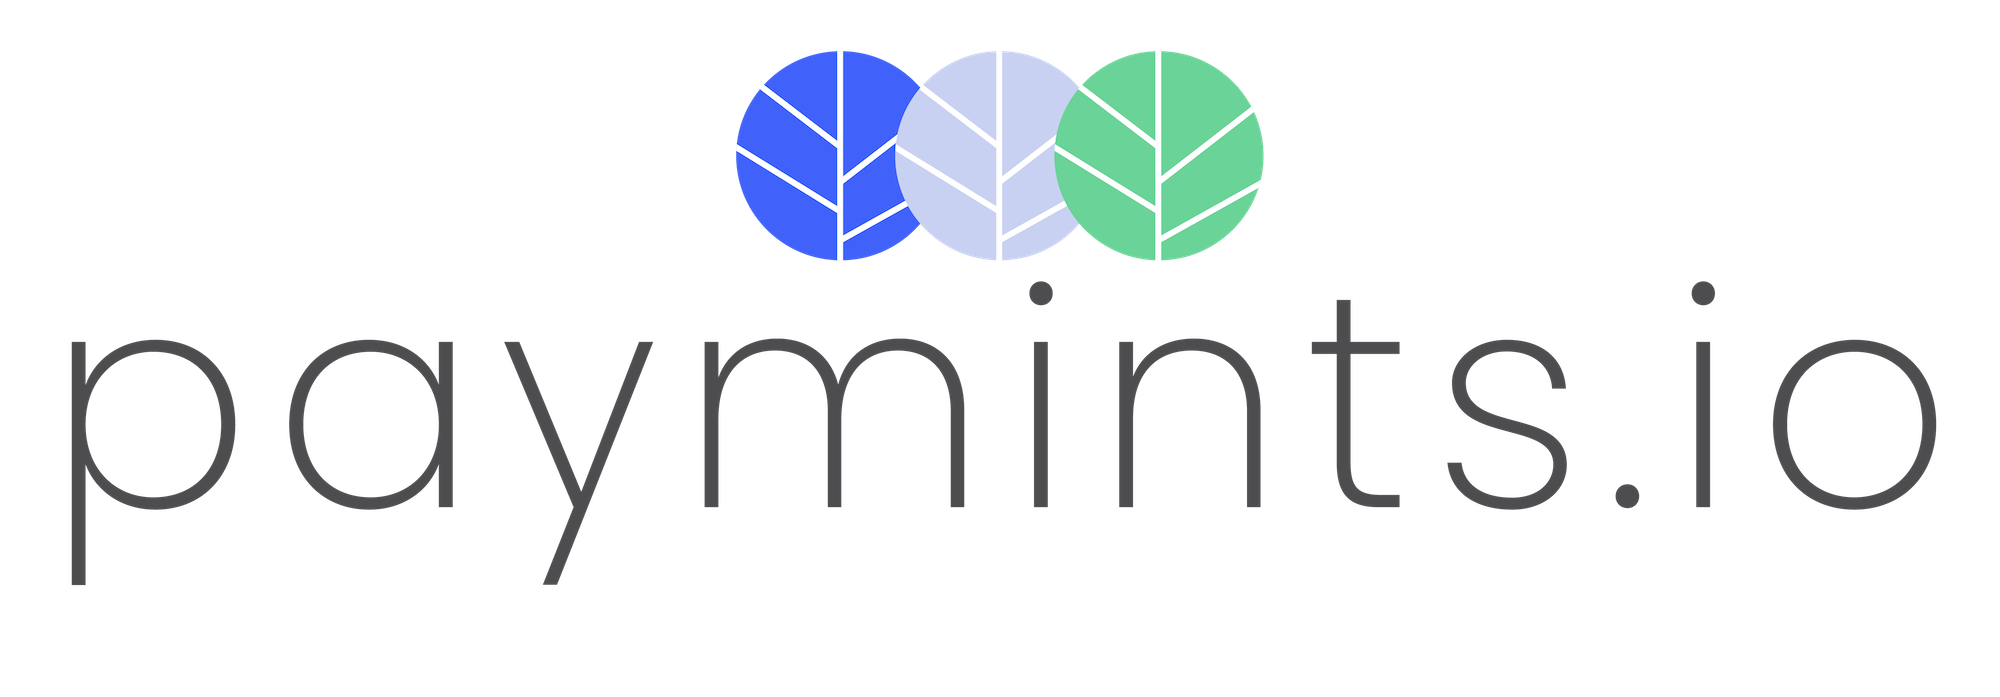 Paymints.io